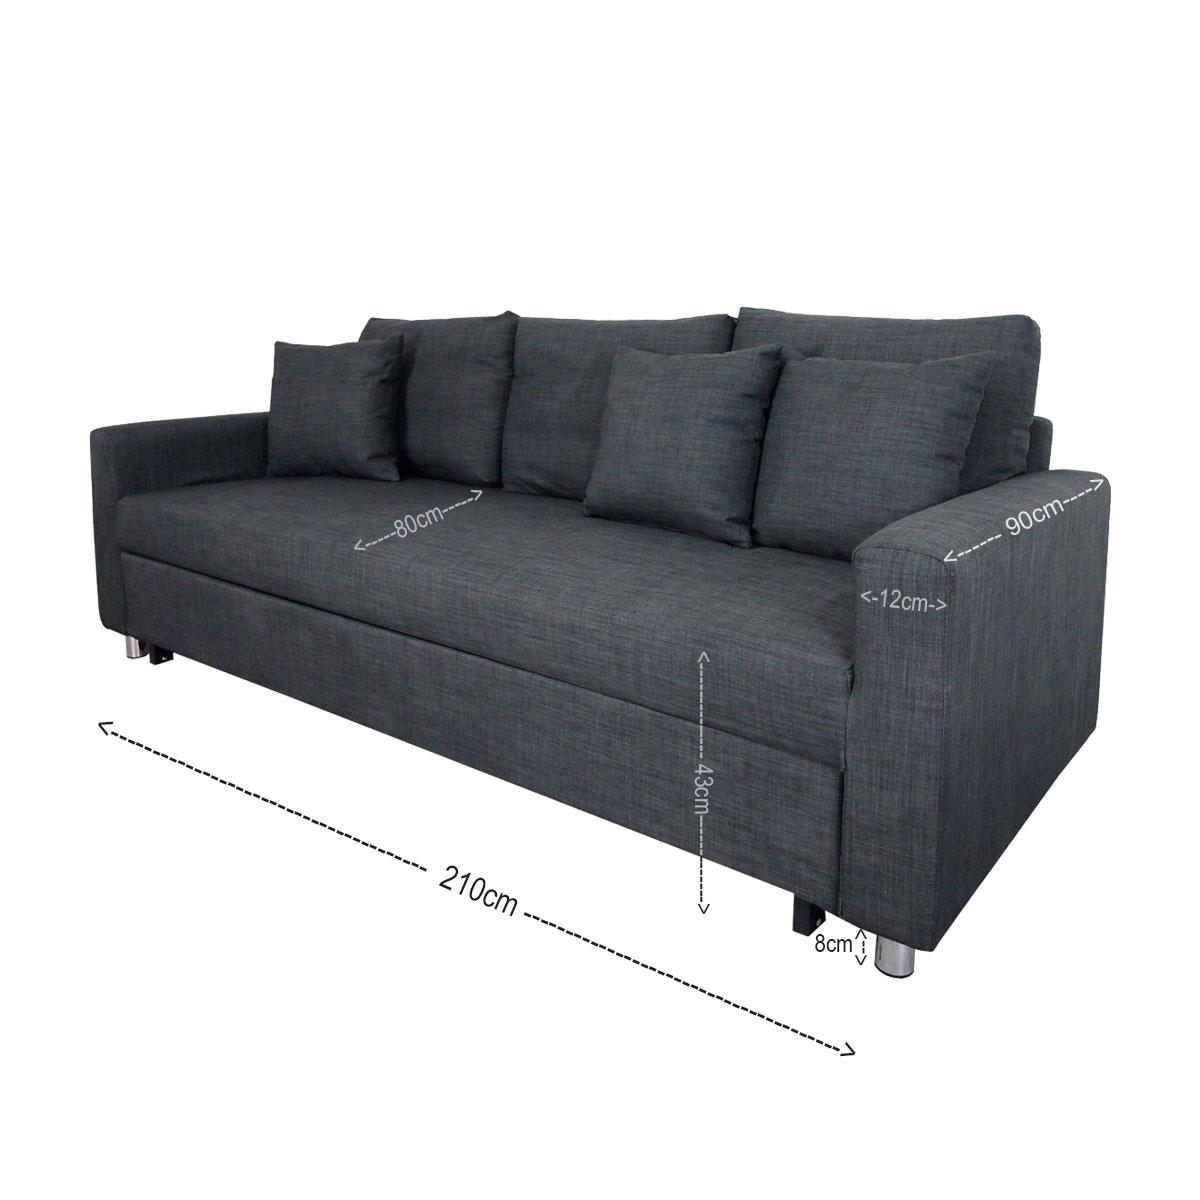 overstock to pullout sofa nomad curated modern shipping home free with fabric couch product bed garden today convertible the stadtmuller